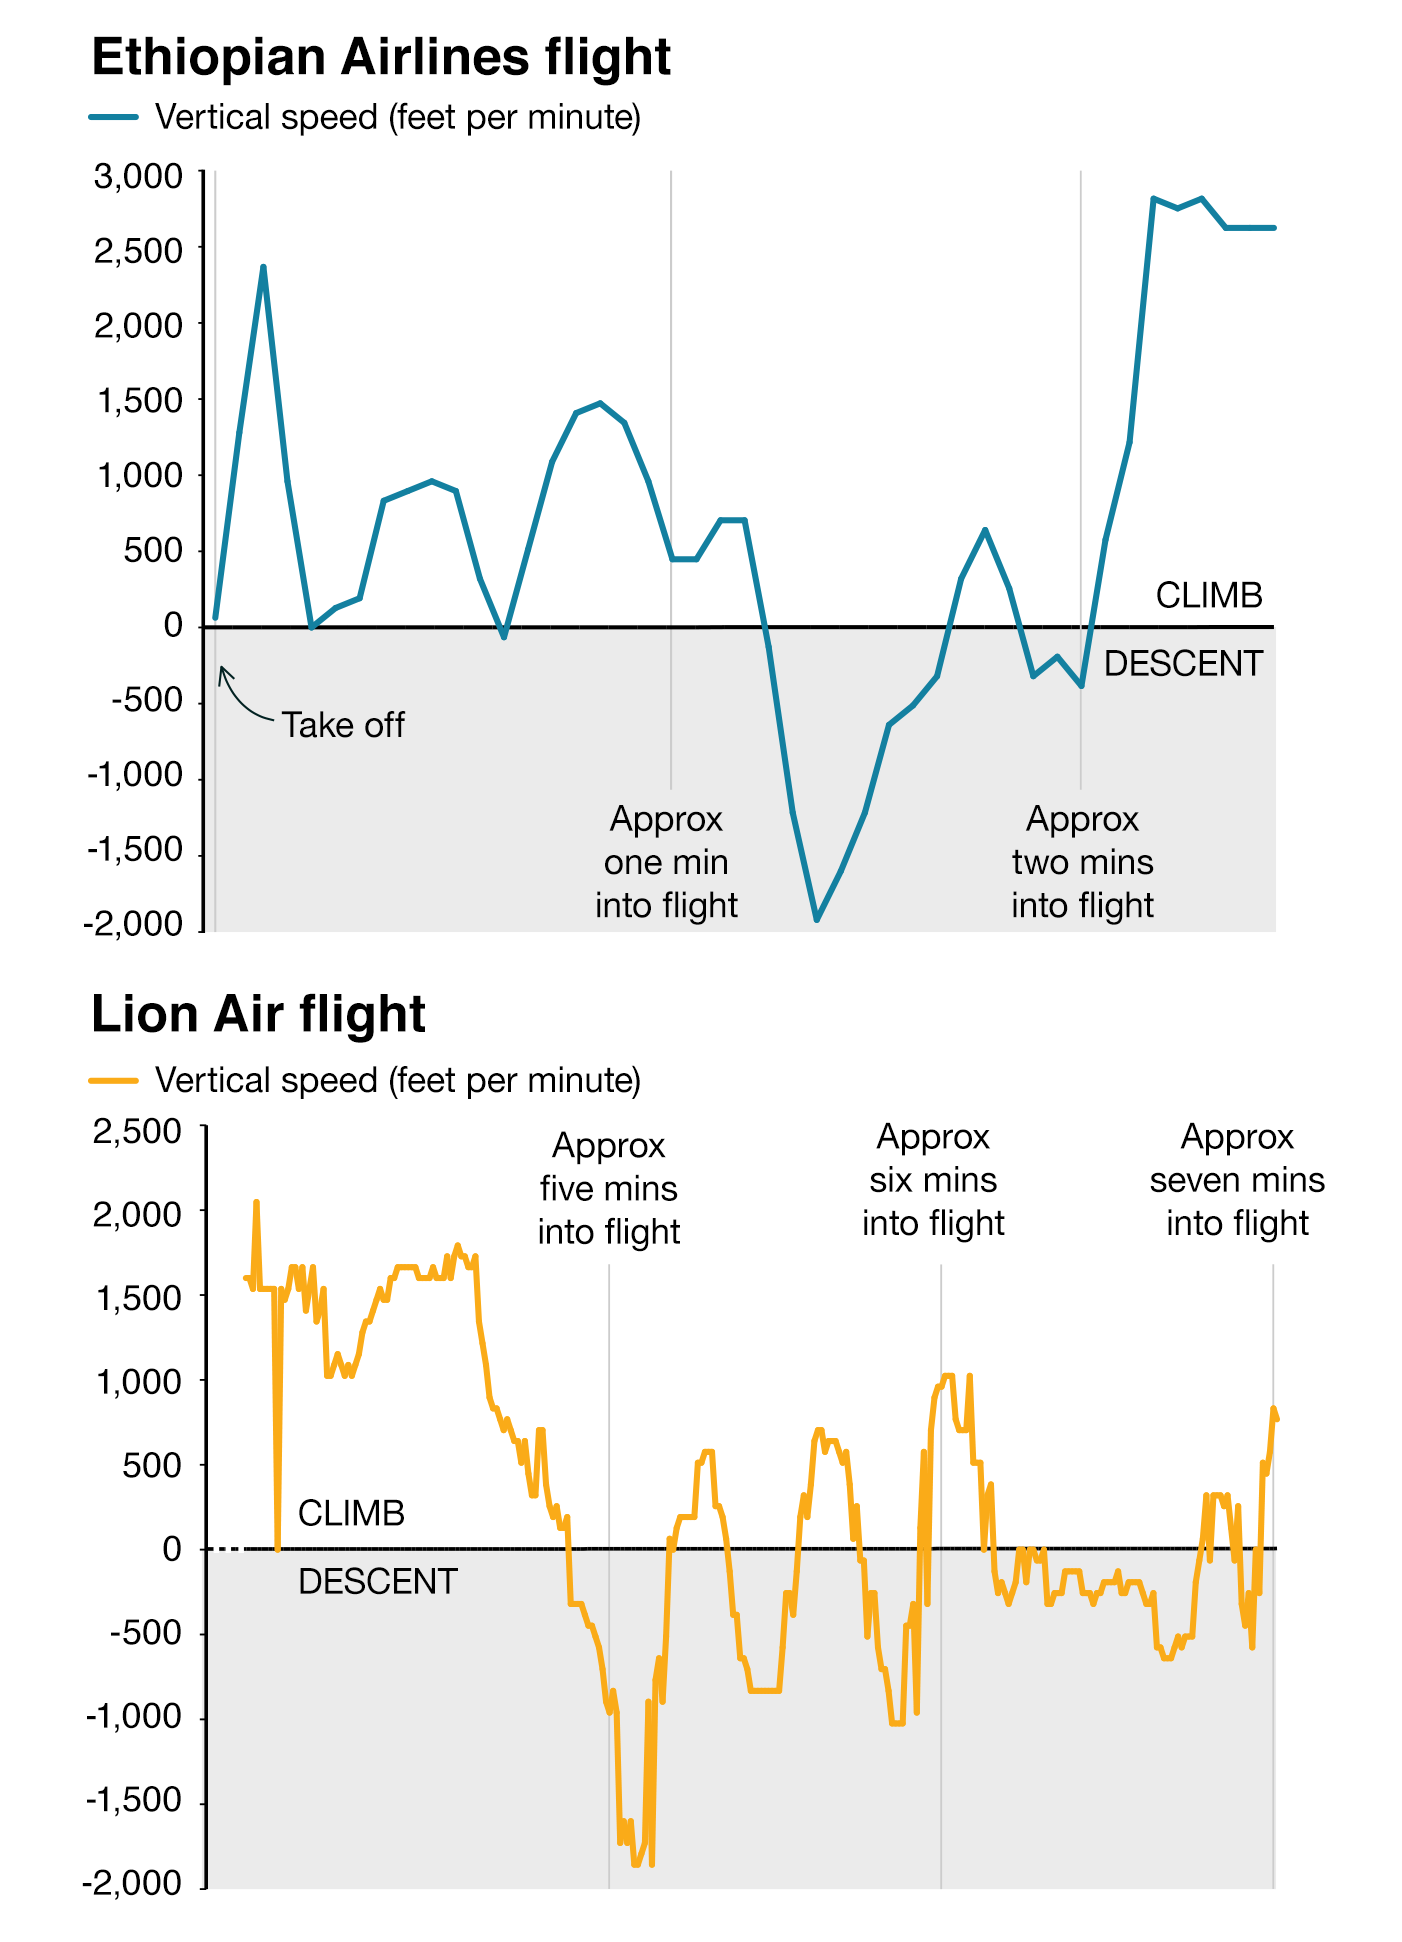 Vertical speed readings show rate of climb\/descent, based on available data from Flight Radar 24